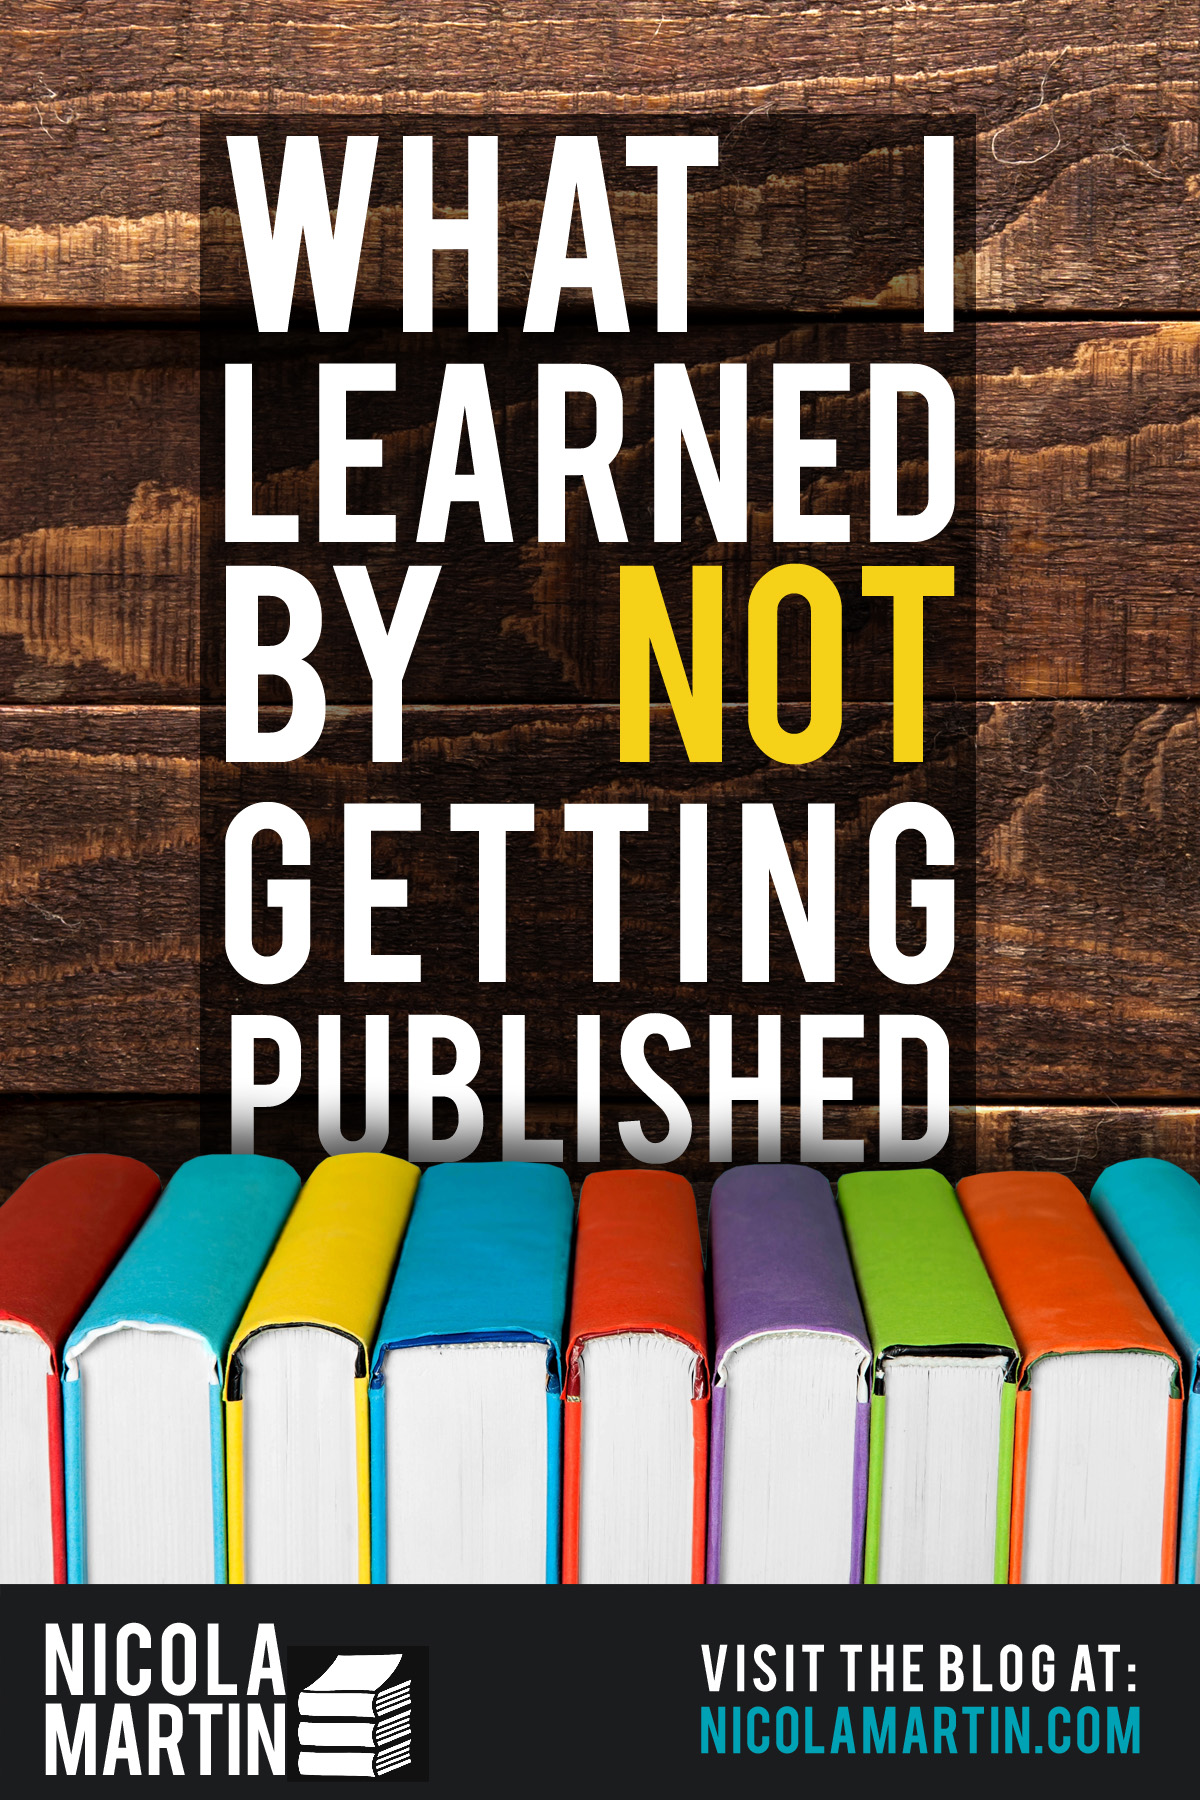 What I learned by NOT getting published